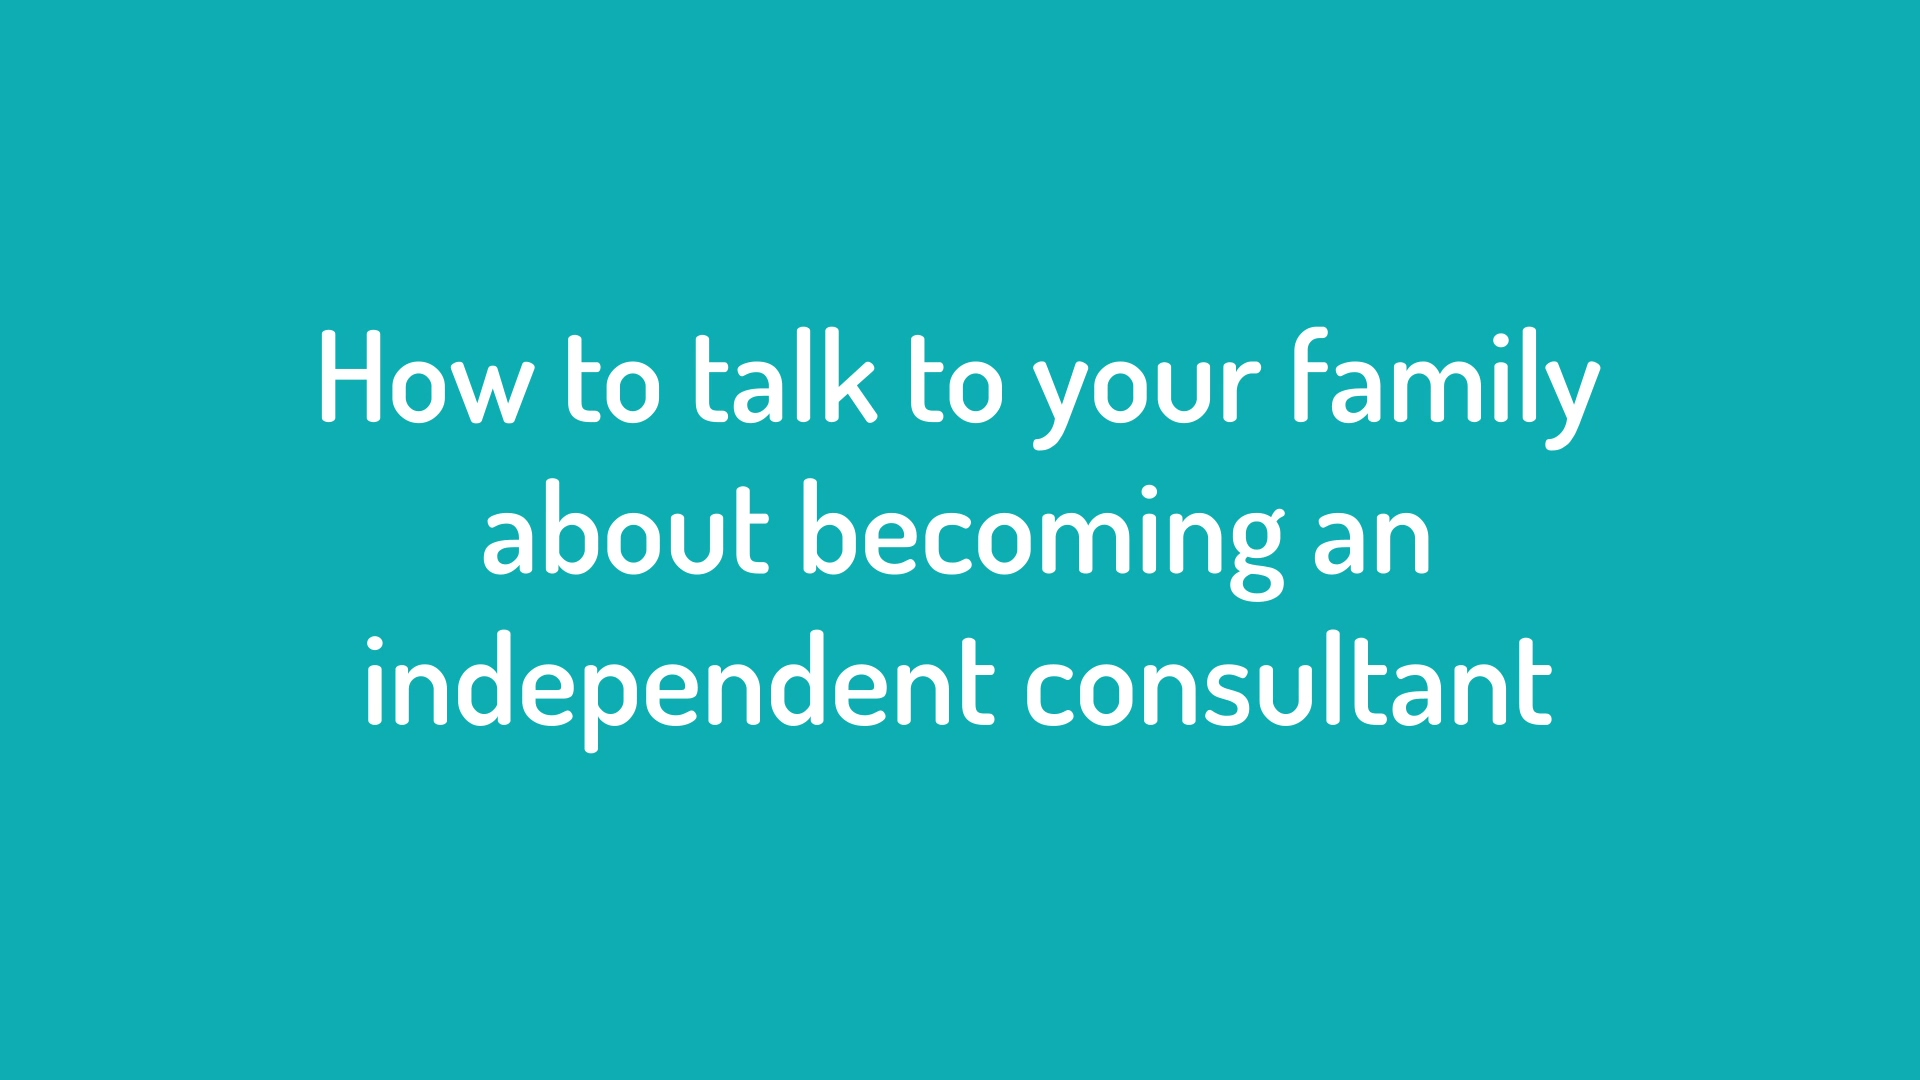 How to talk to your family about becoming an independent consultant_CTA